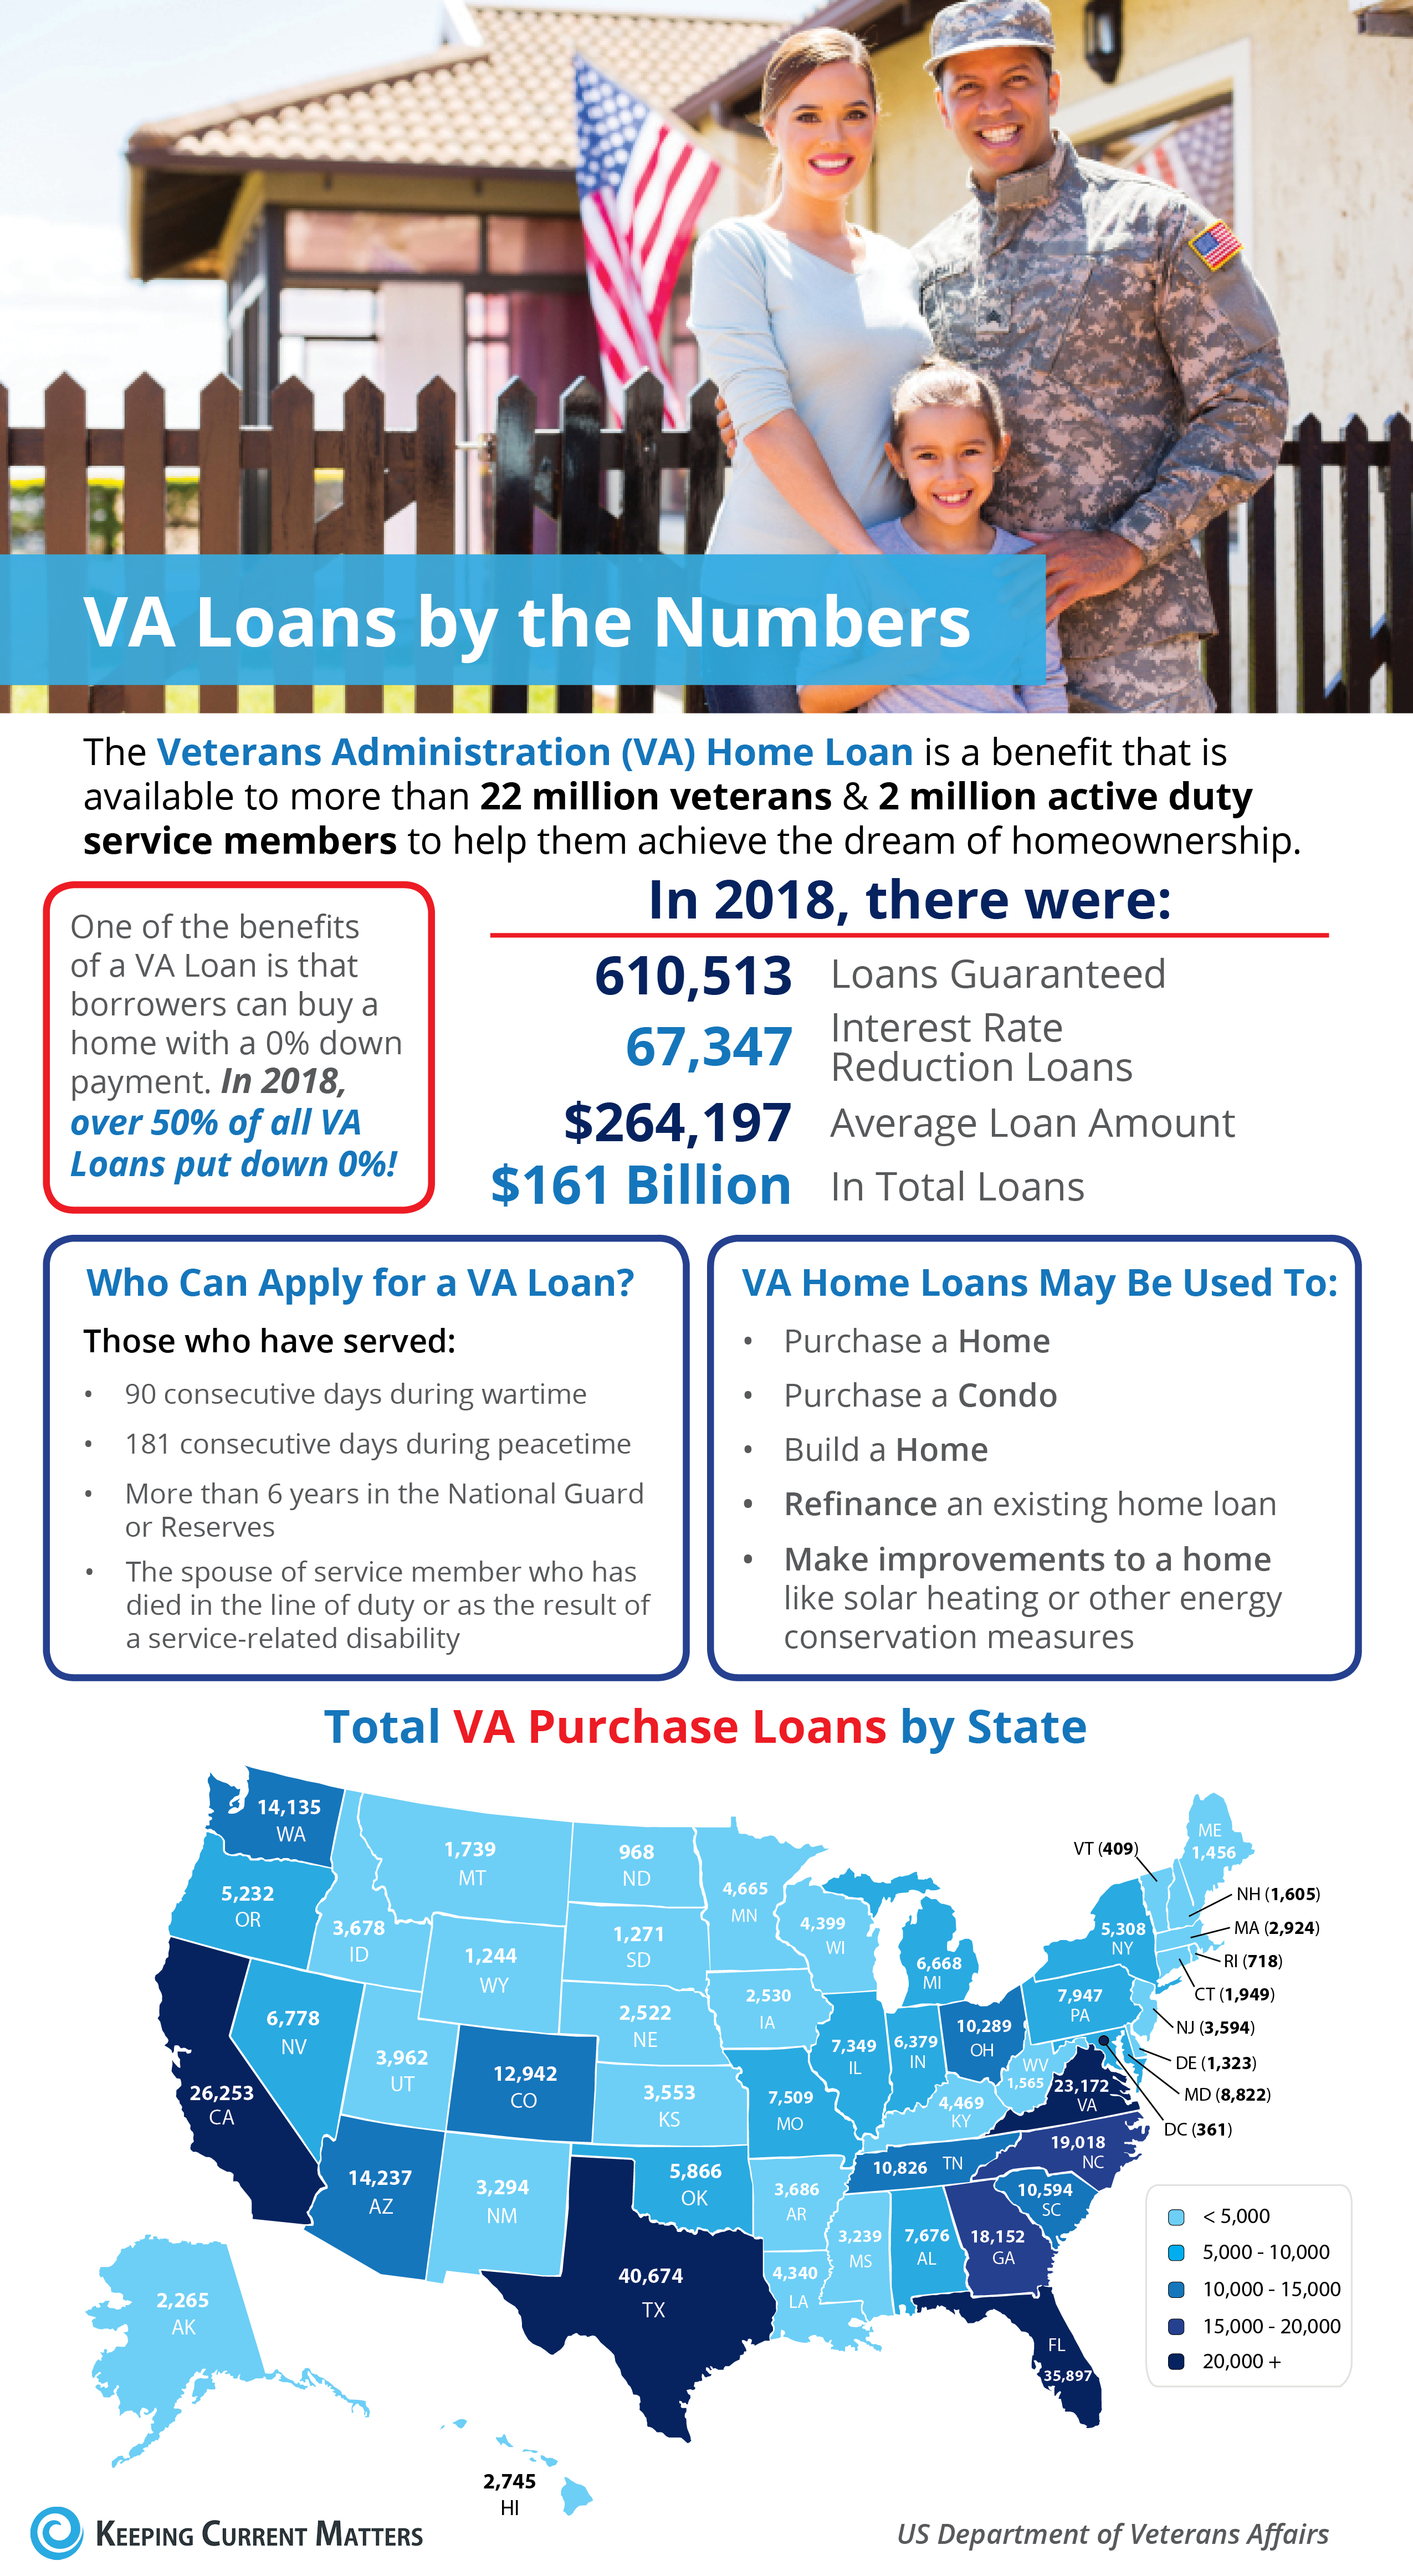 VA Home Loans by the Numbers [INFOGRAPHIC] | Keeping Current Matters